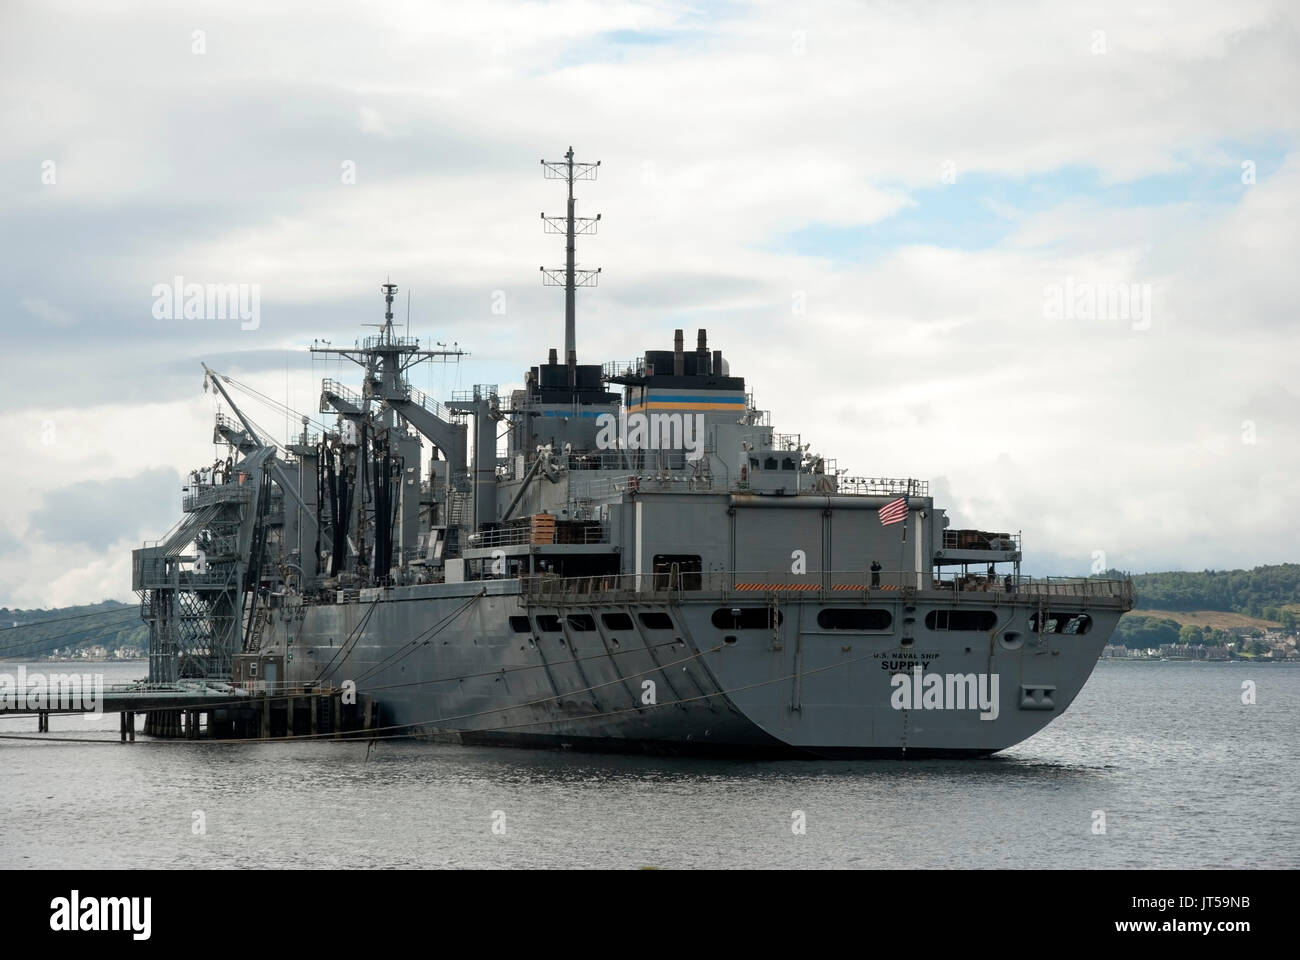 U.S. Naval Ship Supply T-AOE-6 Berthed at Loch Striven Scotland rear port side landscape view of battleship grey 1994 U.S. Military Sealift Command M. - Stock Image